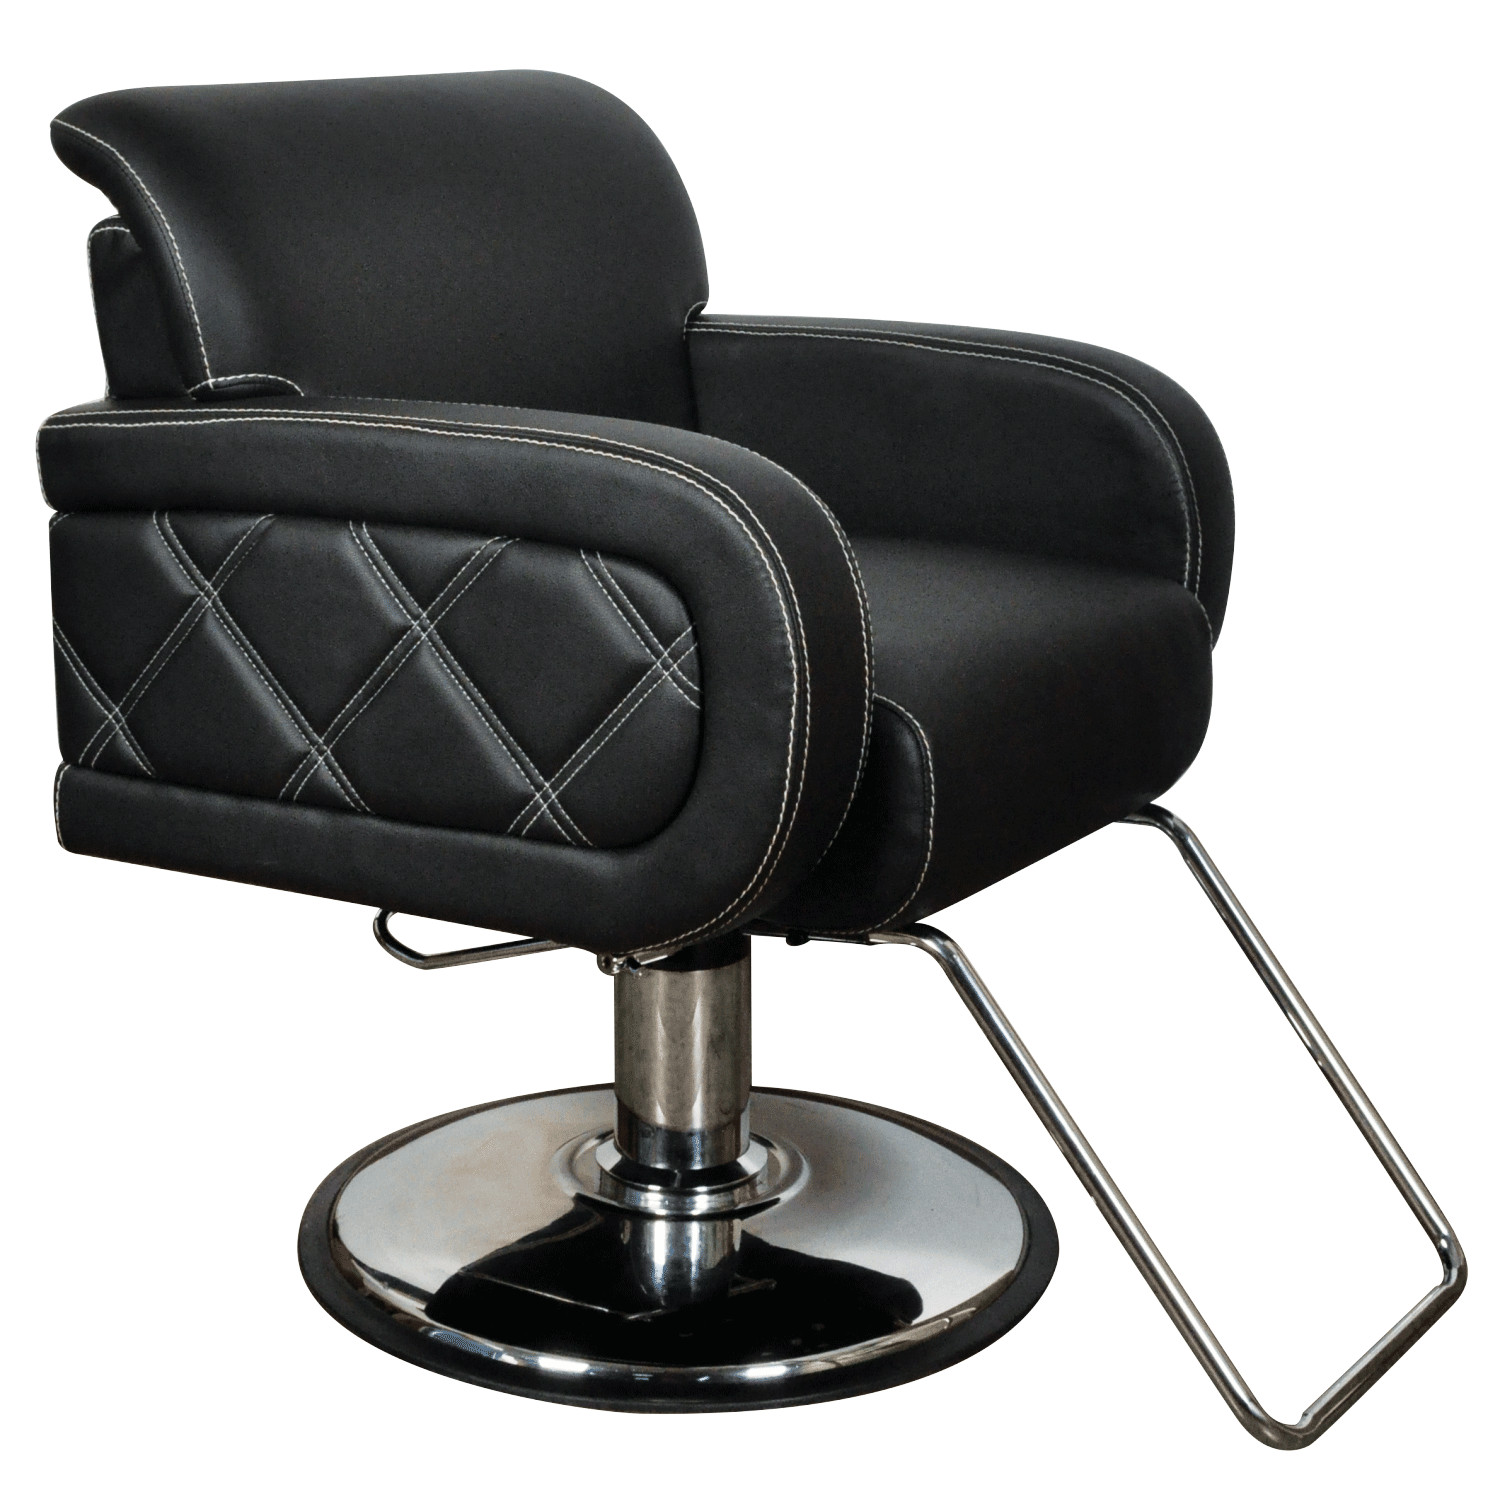 London Styling Chair at CosmoProf Equipment